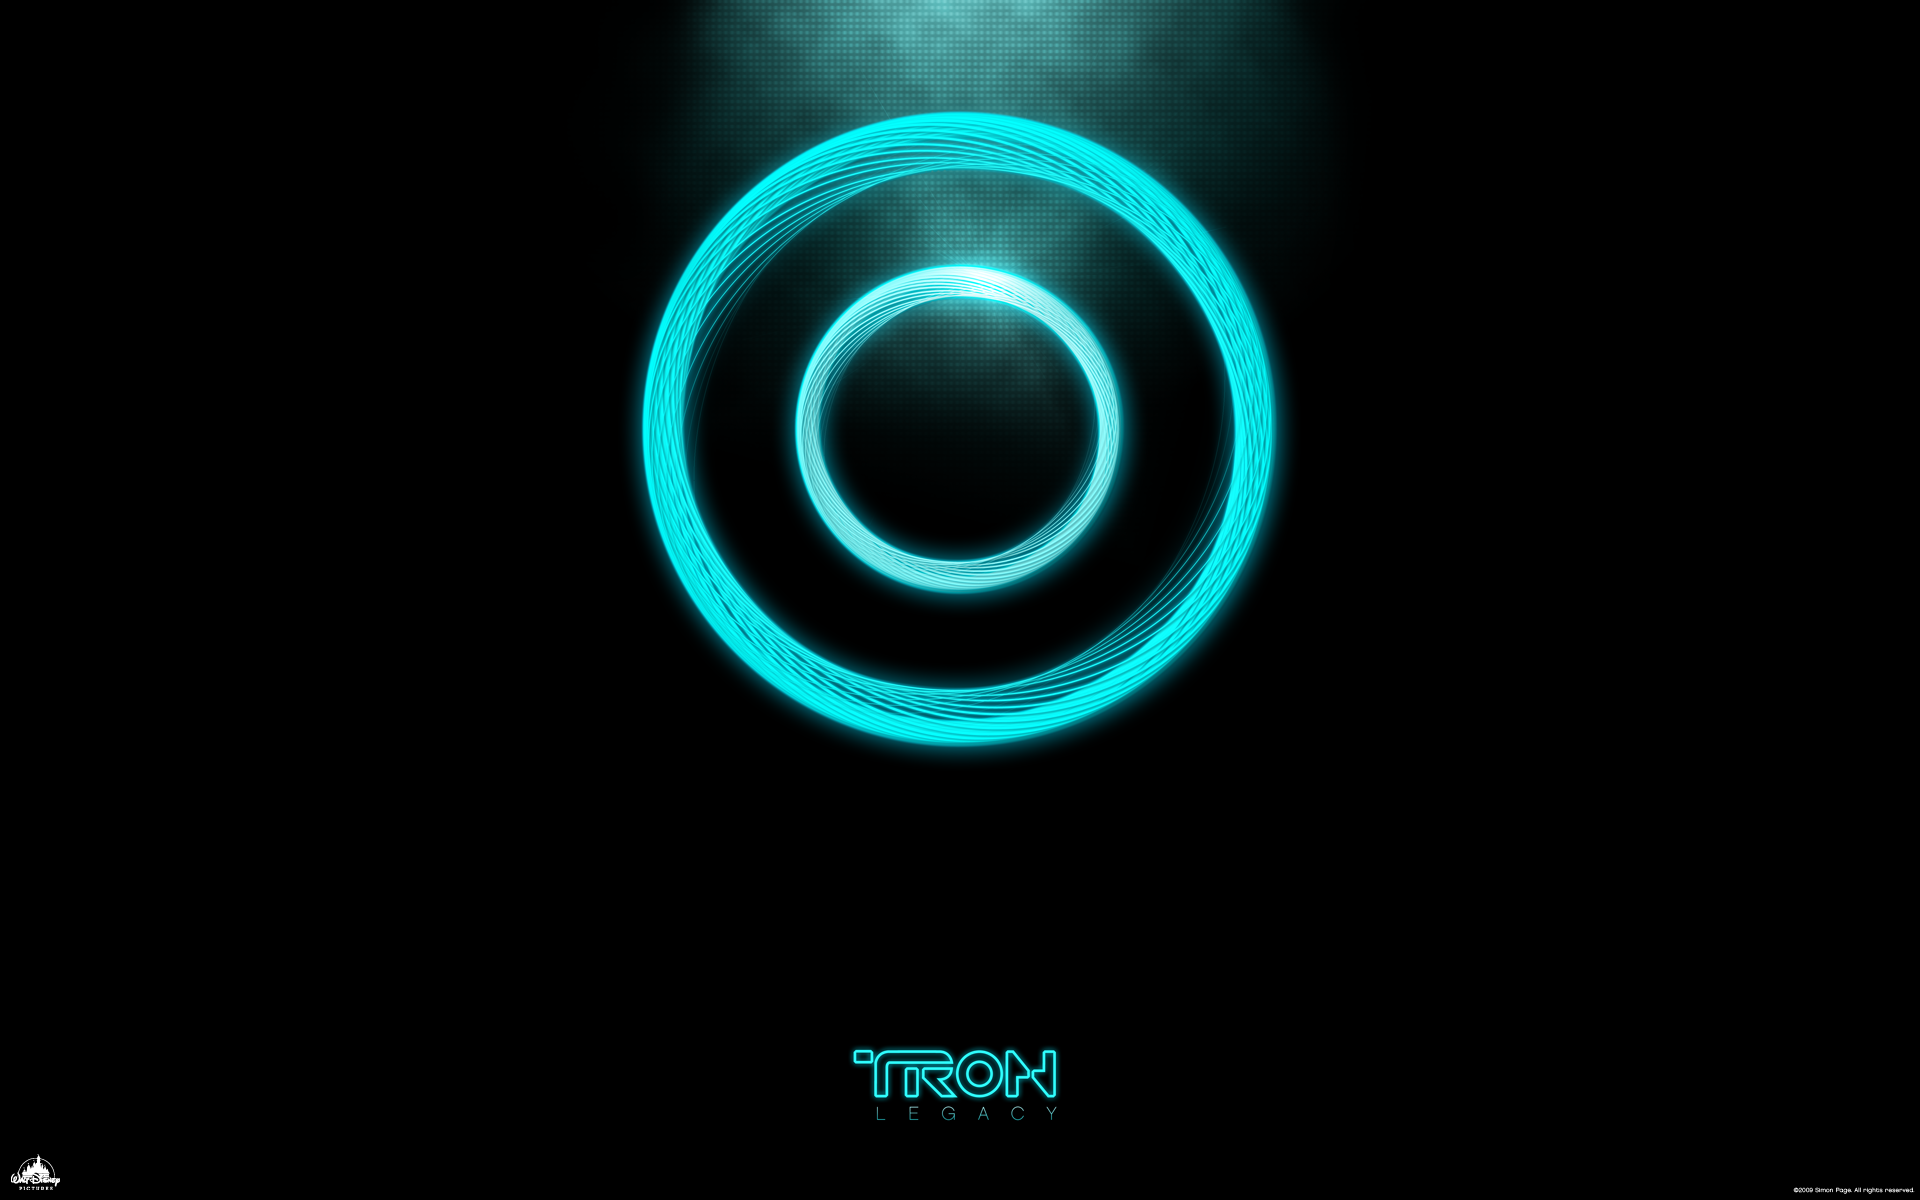 awesome tronlegacy wallpapers - photo #17